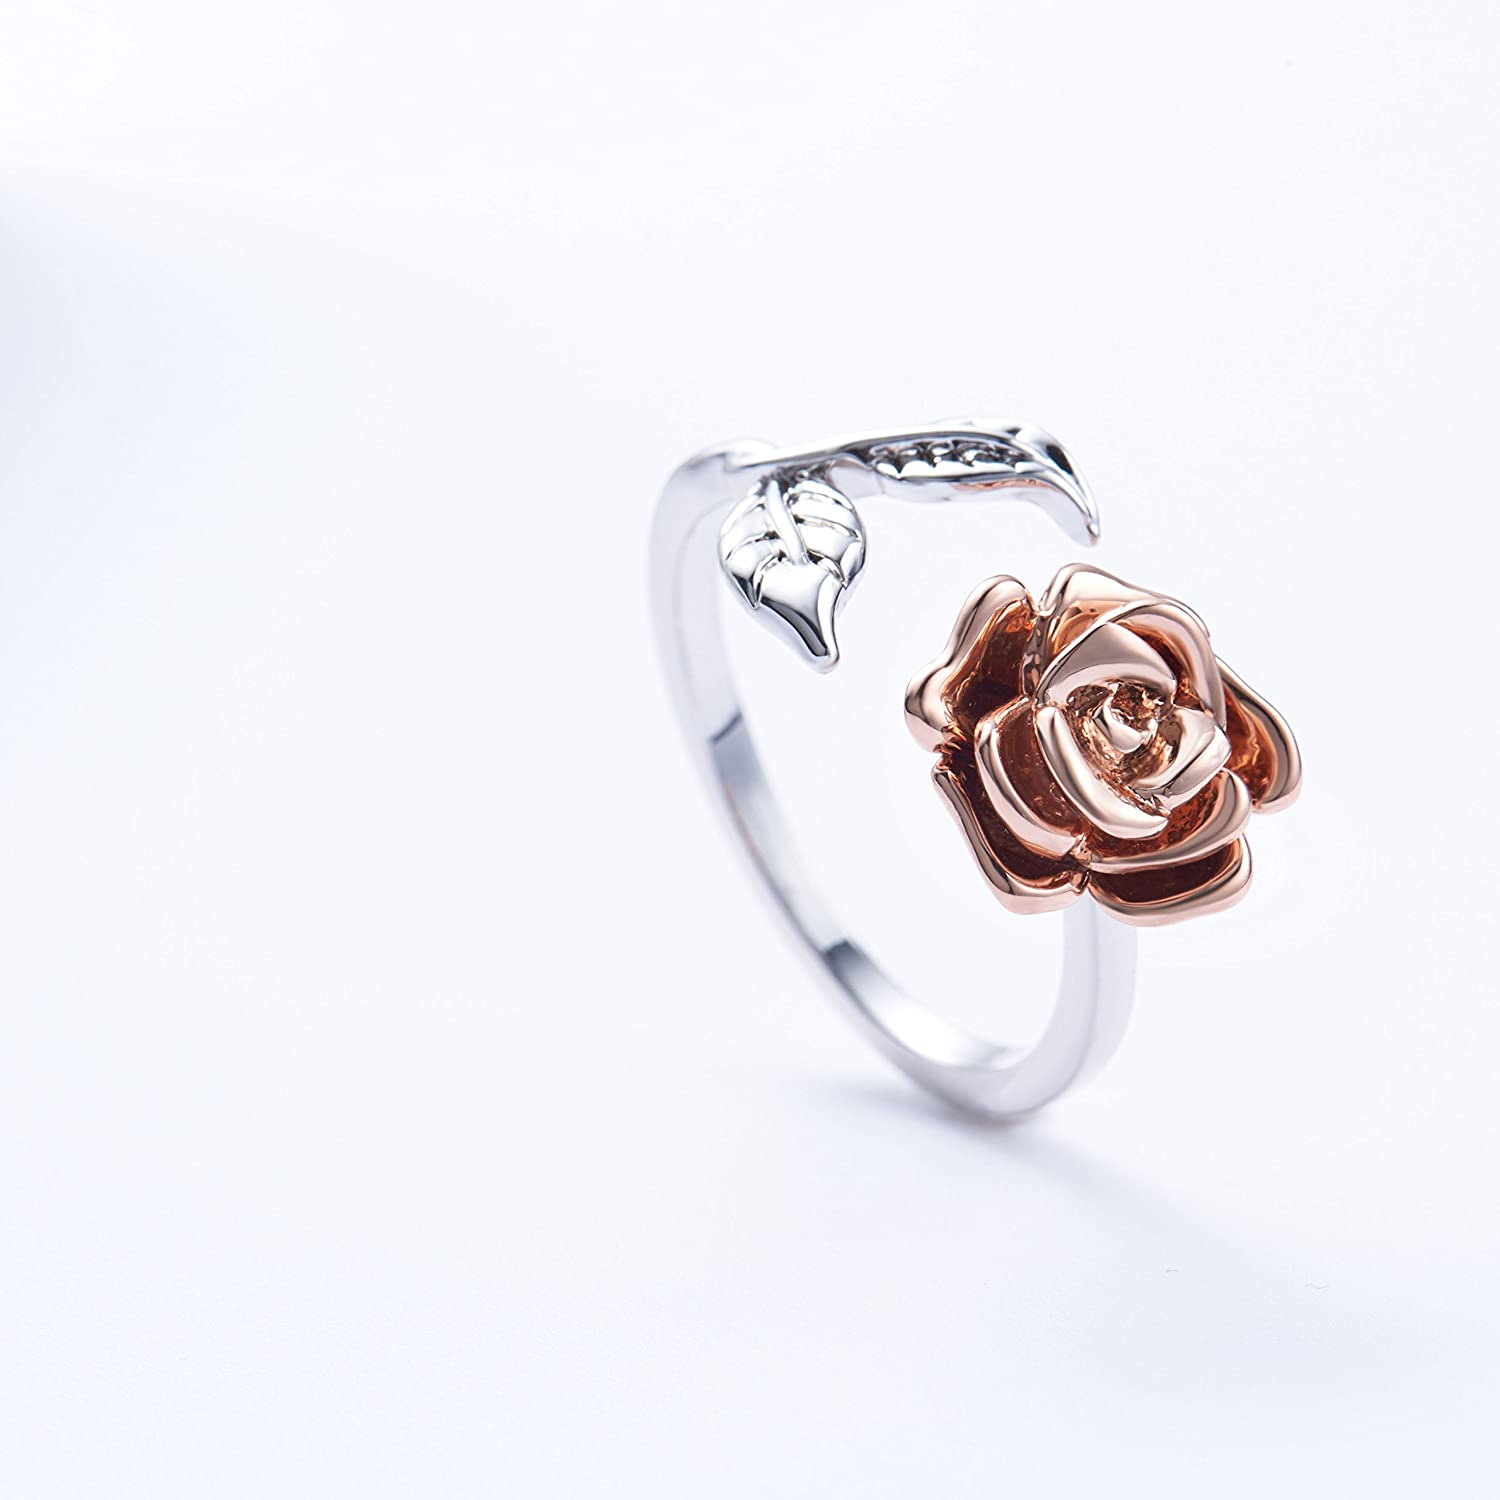 3fcb0d55637b Amazon.com  Rose Ring for Woman Flower Leaf Ring Adjustable Rings for Teen  Girls (red rose)  Jewelry